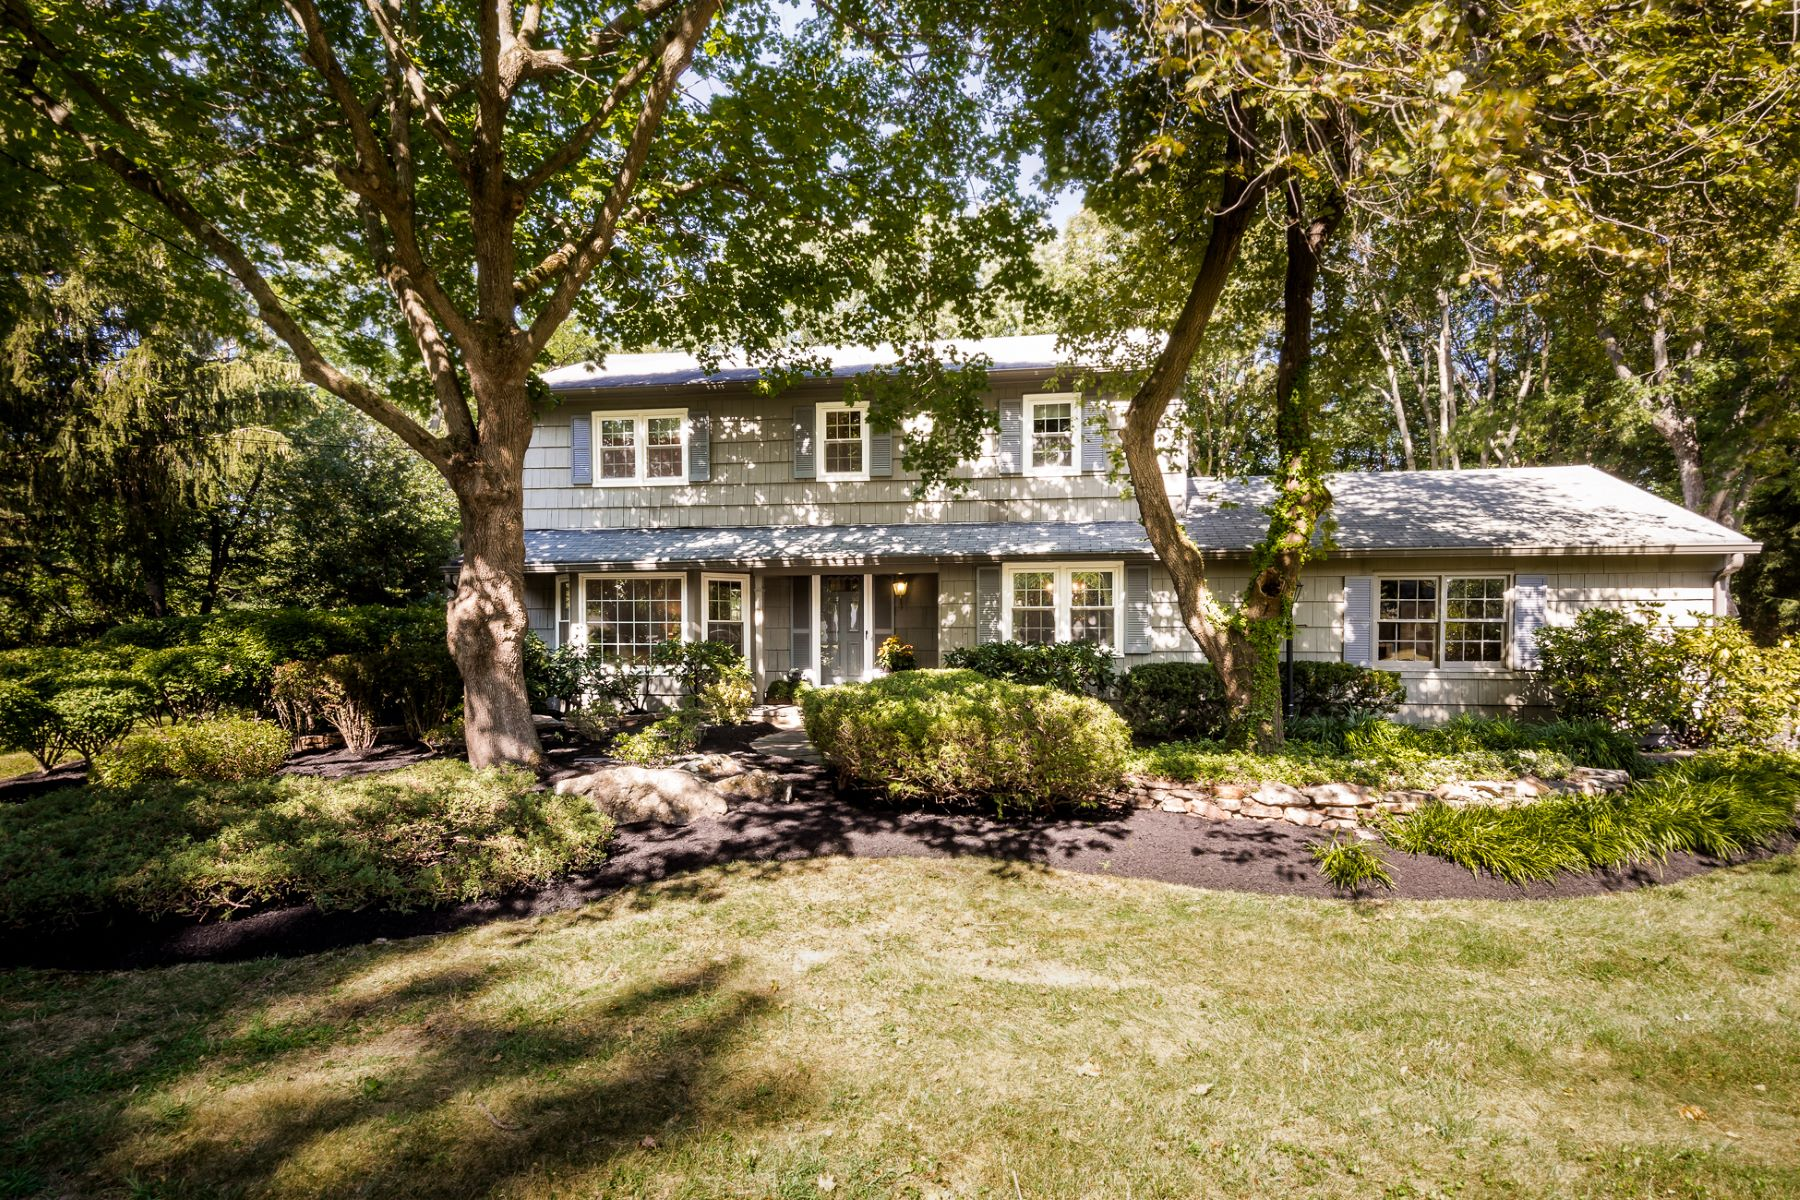 Single Family Home for Sale at Sunny West Windsor Home on .71 Acres 5 Hathaway Drive West Windsor, New Jersey 08550 United States